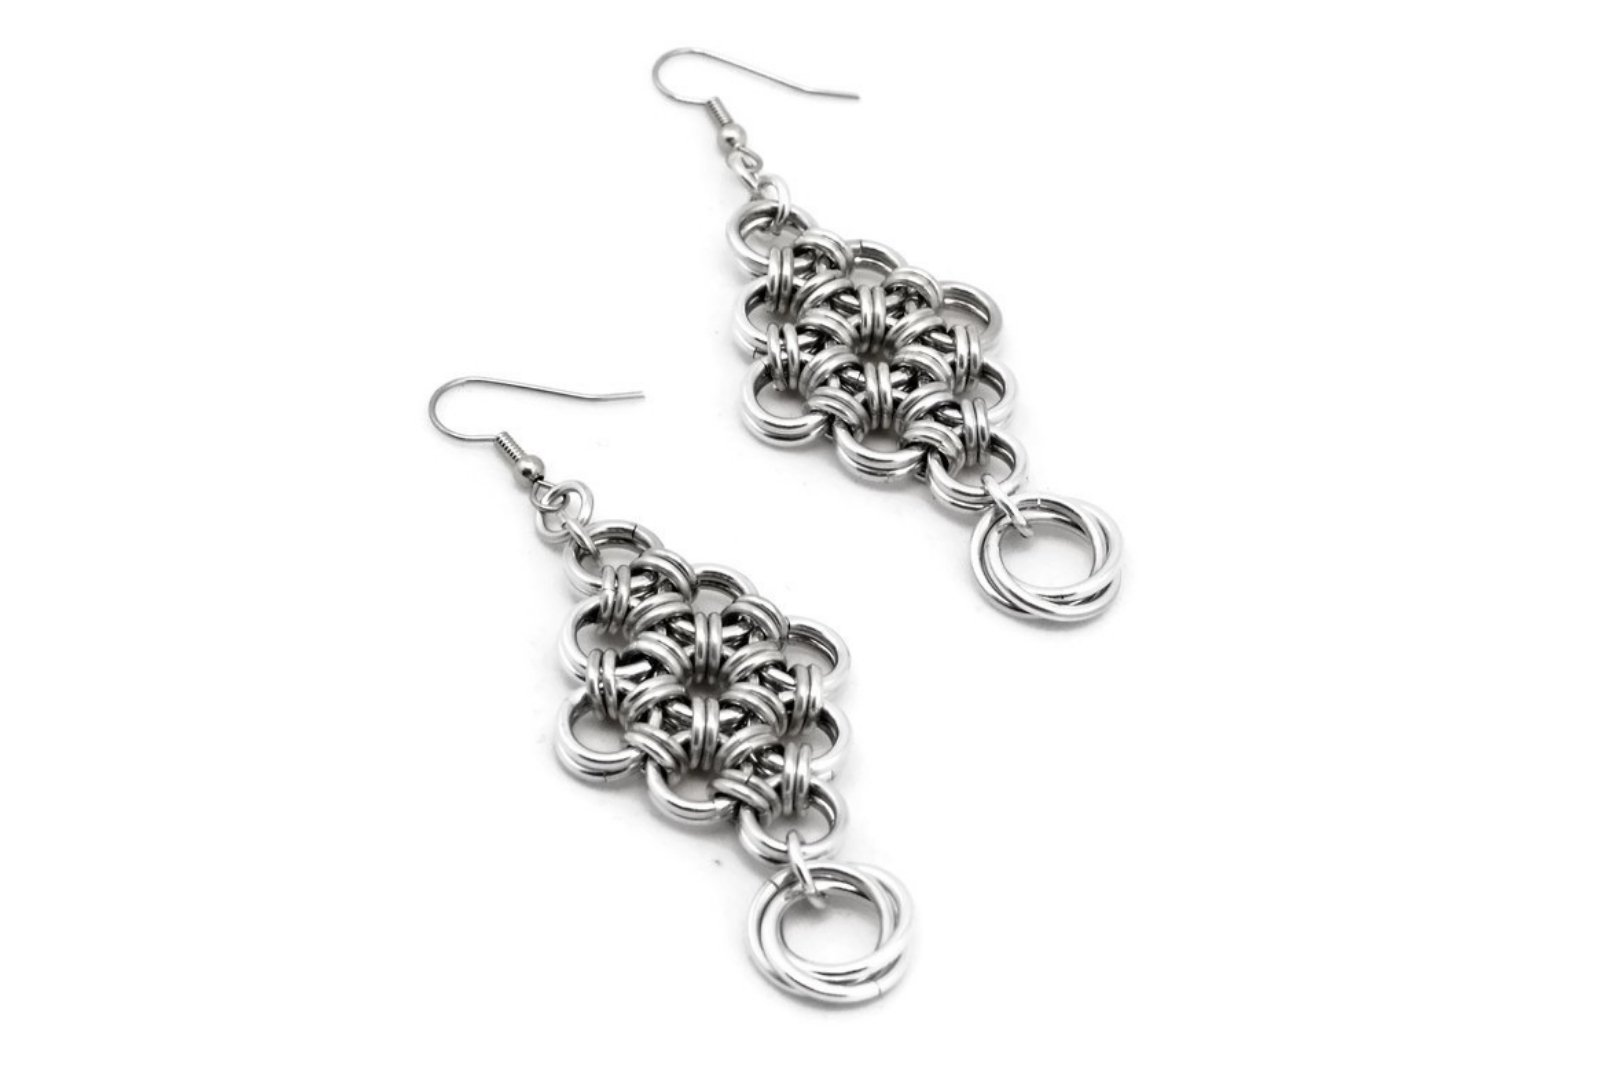 large-silver-earrings-japanese-lace-by-serenity-in-chains